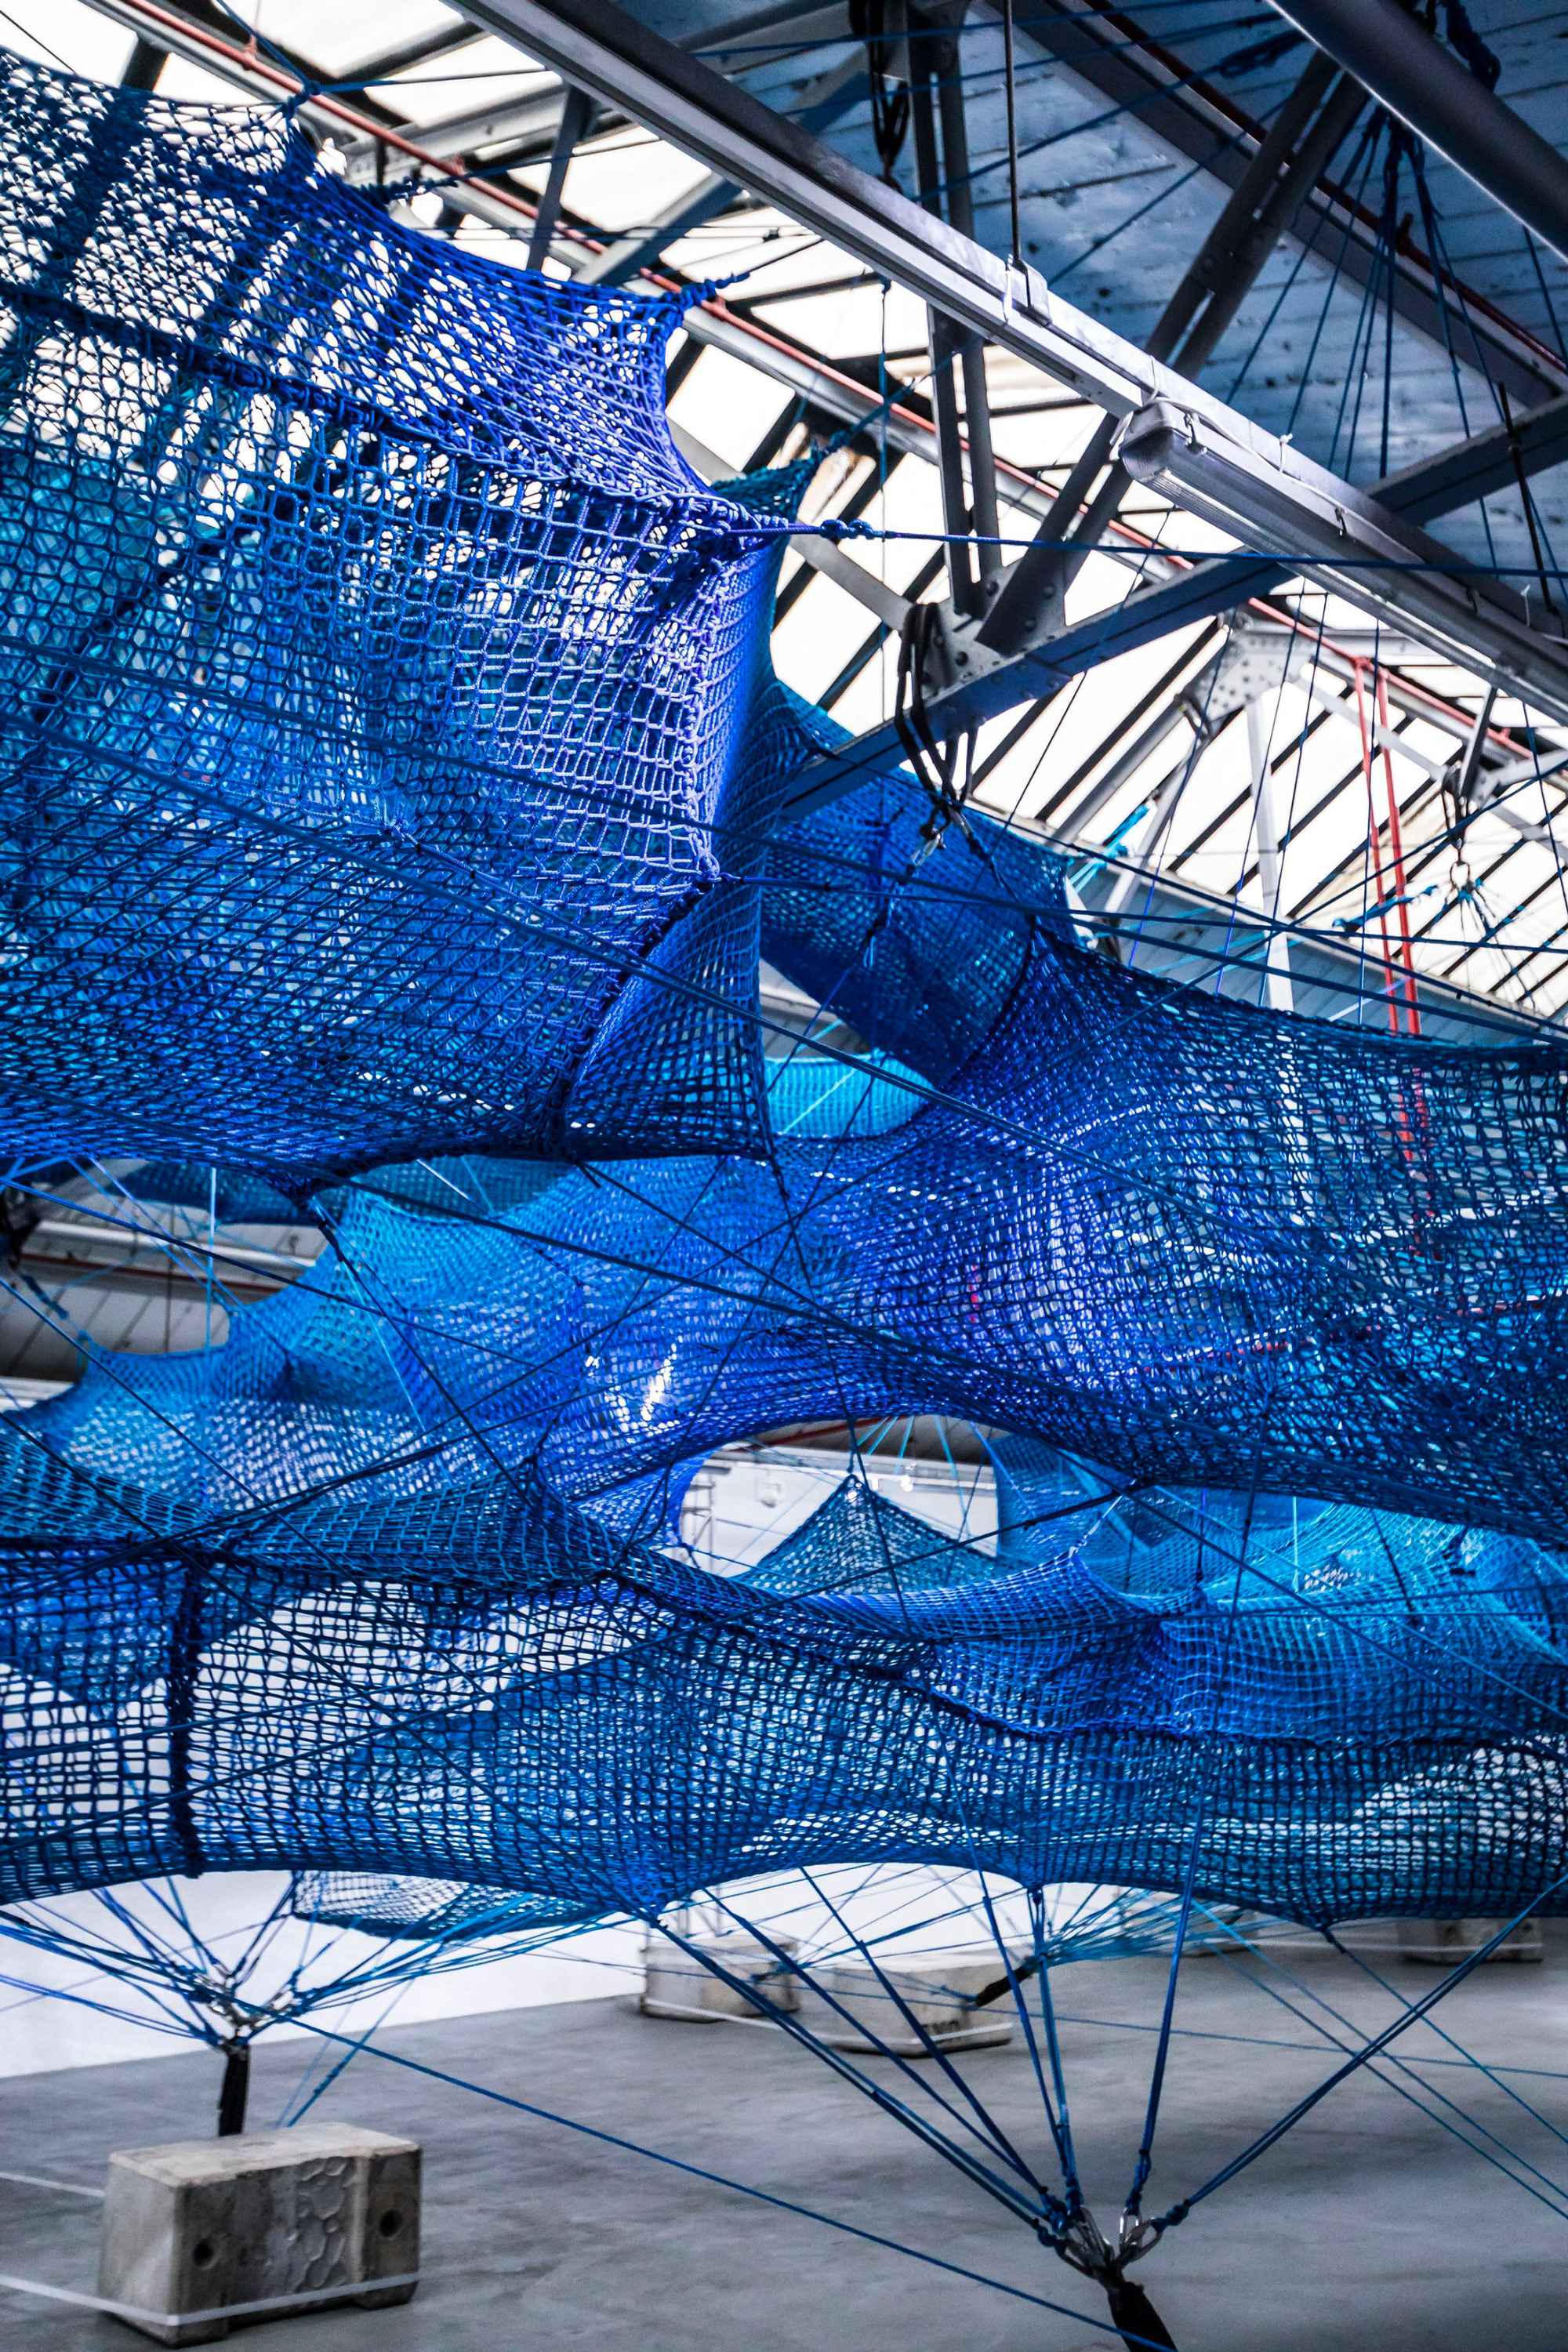 'The Weaving Project' Invites Visitors to Climb Inside a Massive Installation Formed From Nearly 10,000 Feet of Rope | Colossal